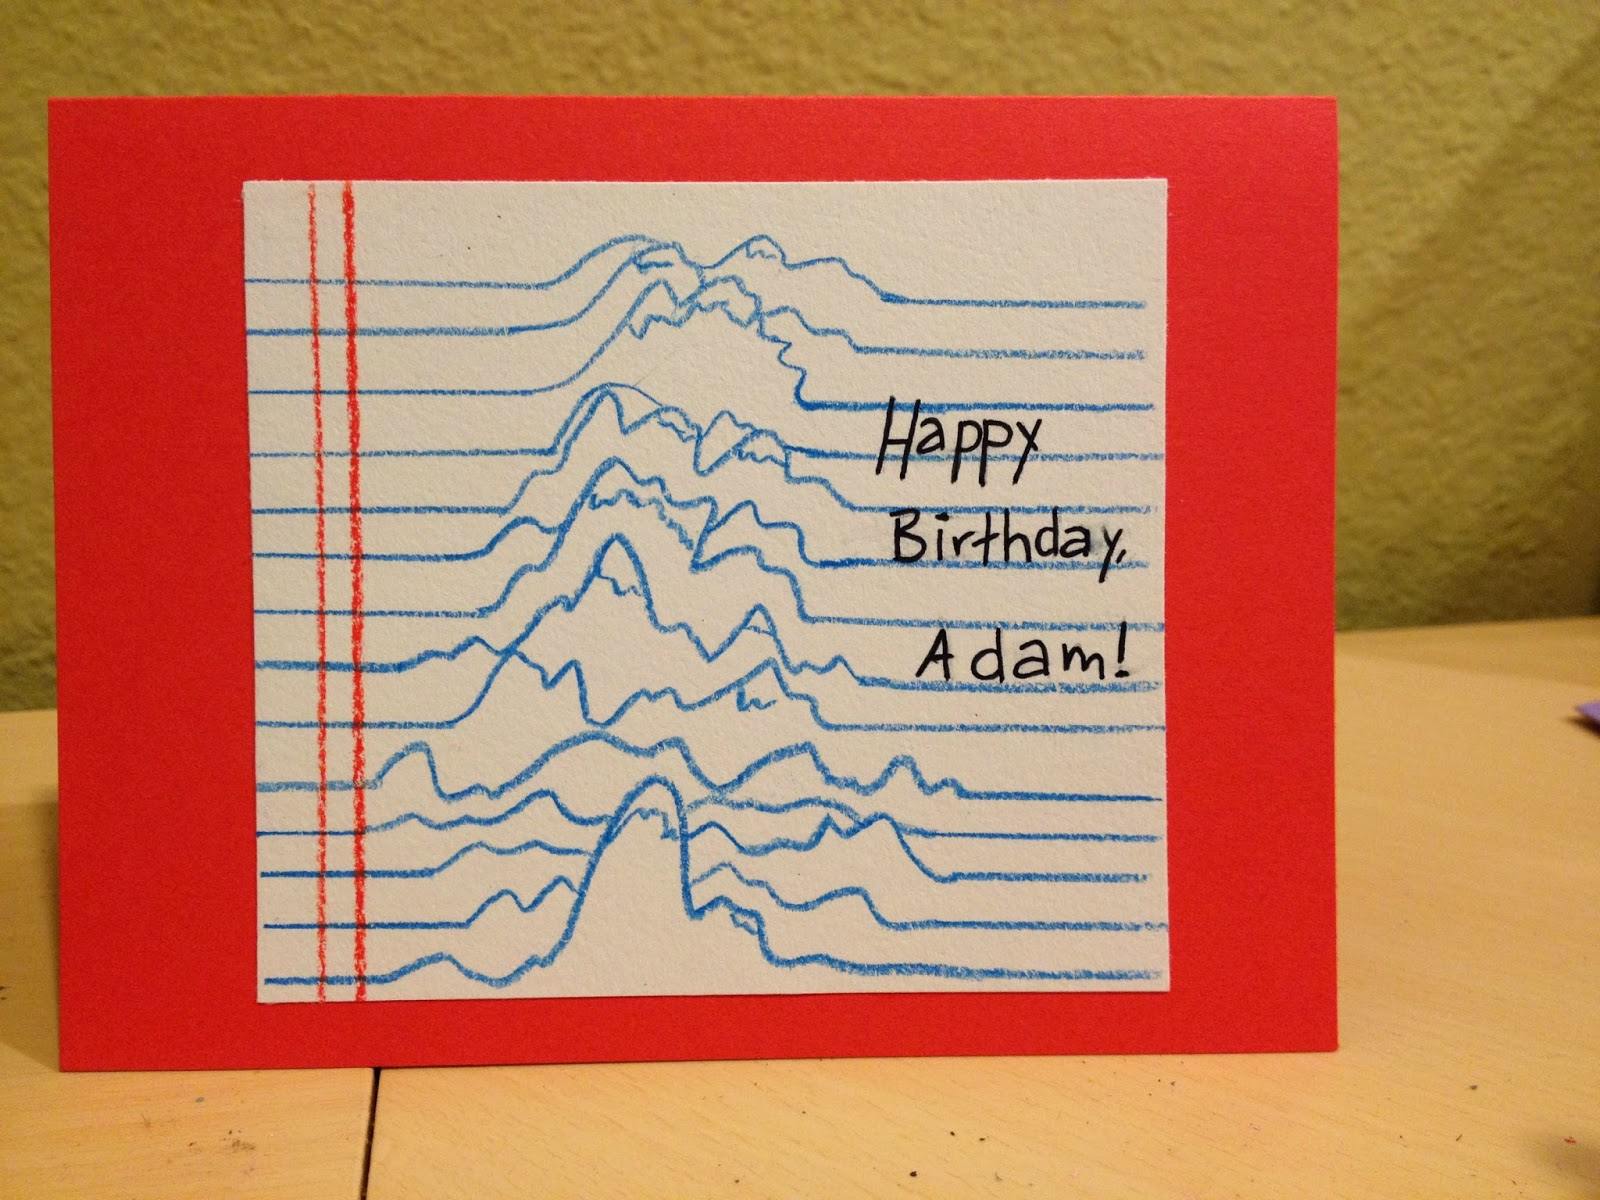 Debbie dots greeting card blog lined paper mountains birthday for adams birthday card i created some lined paper where the lines themselves rise up to become mountains this is such an interesting idea m4hsunfo